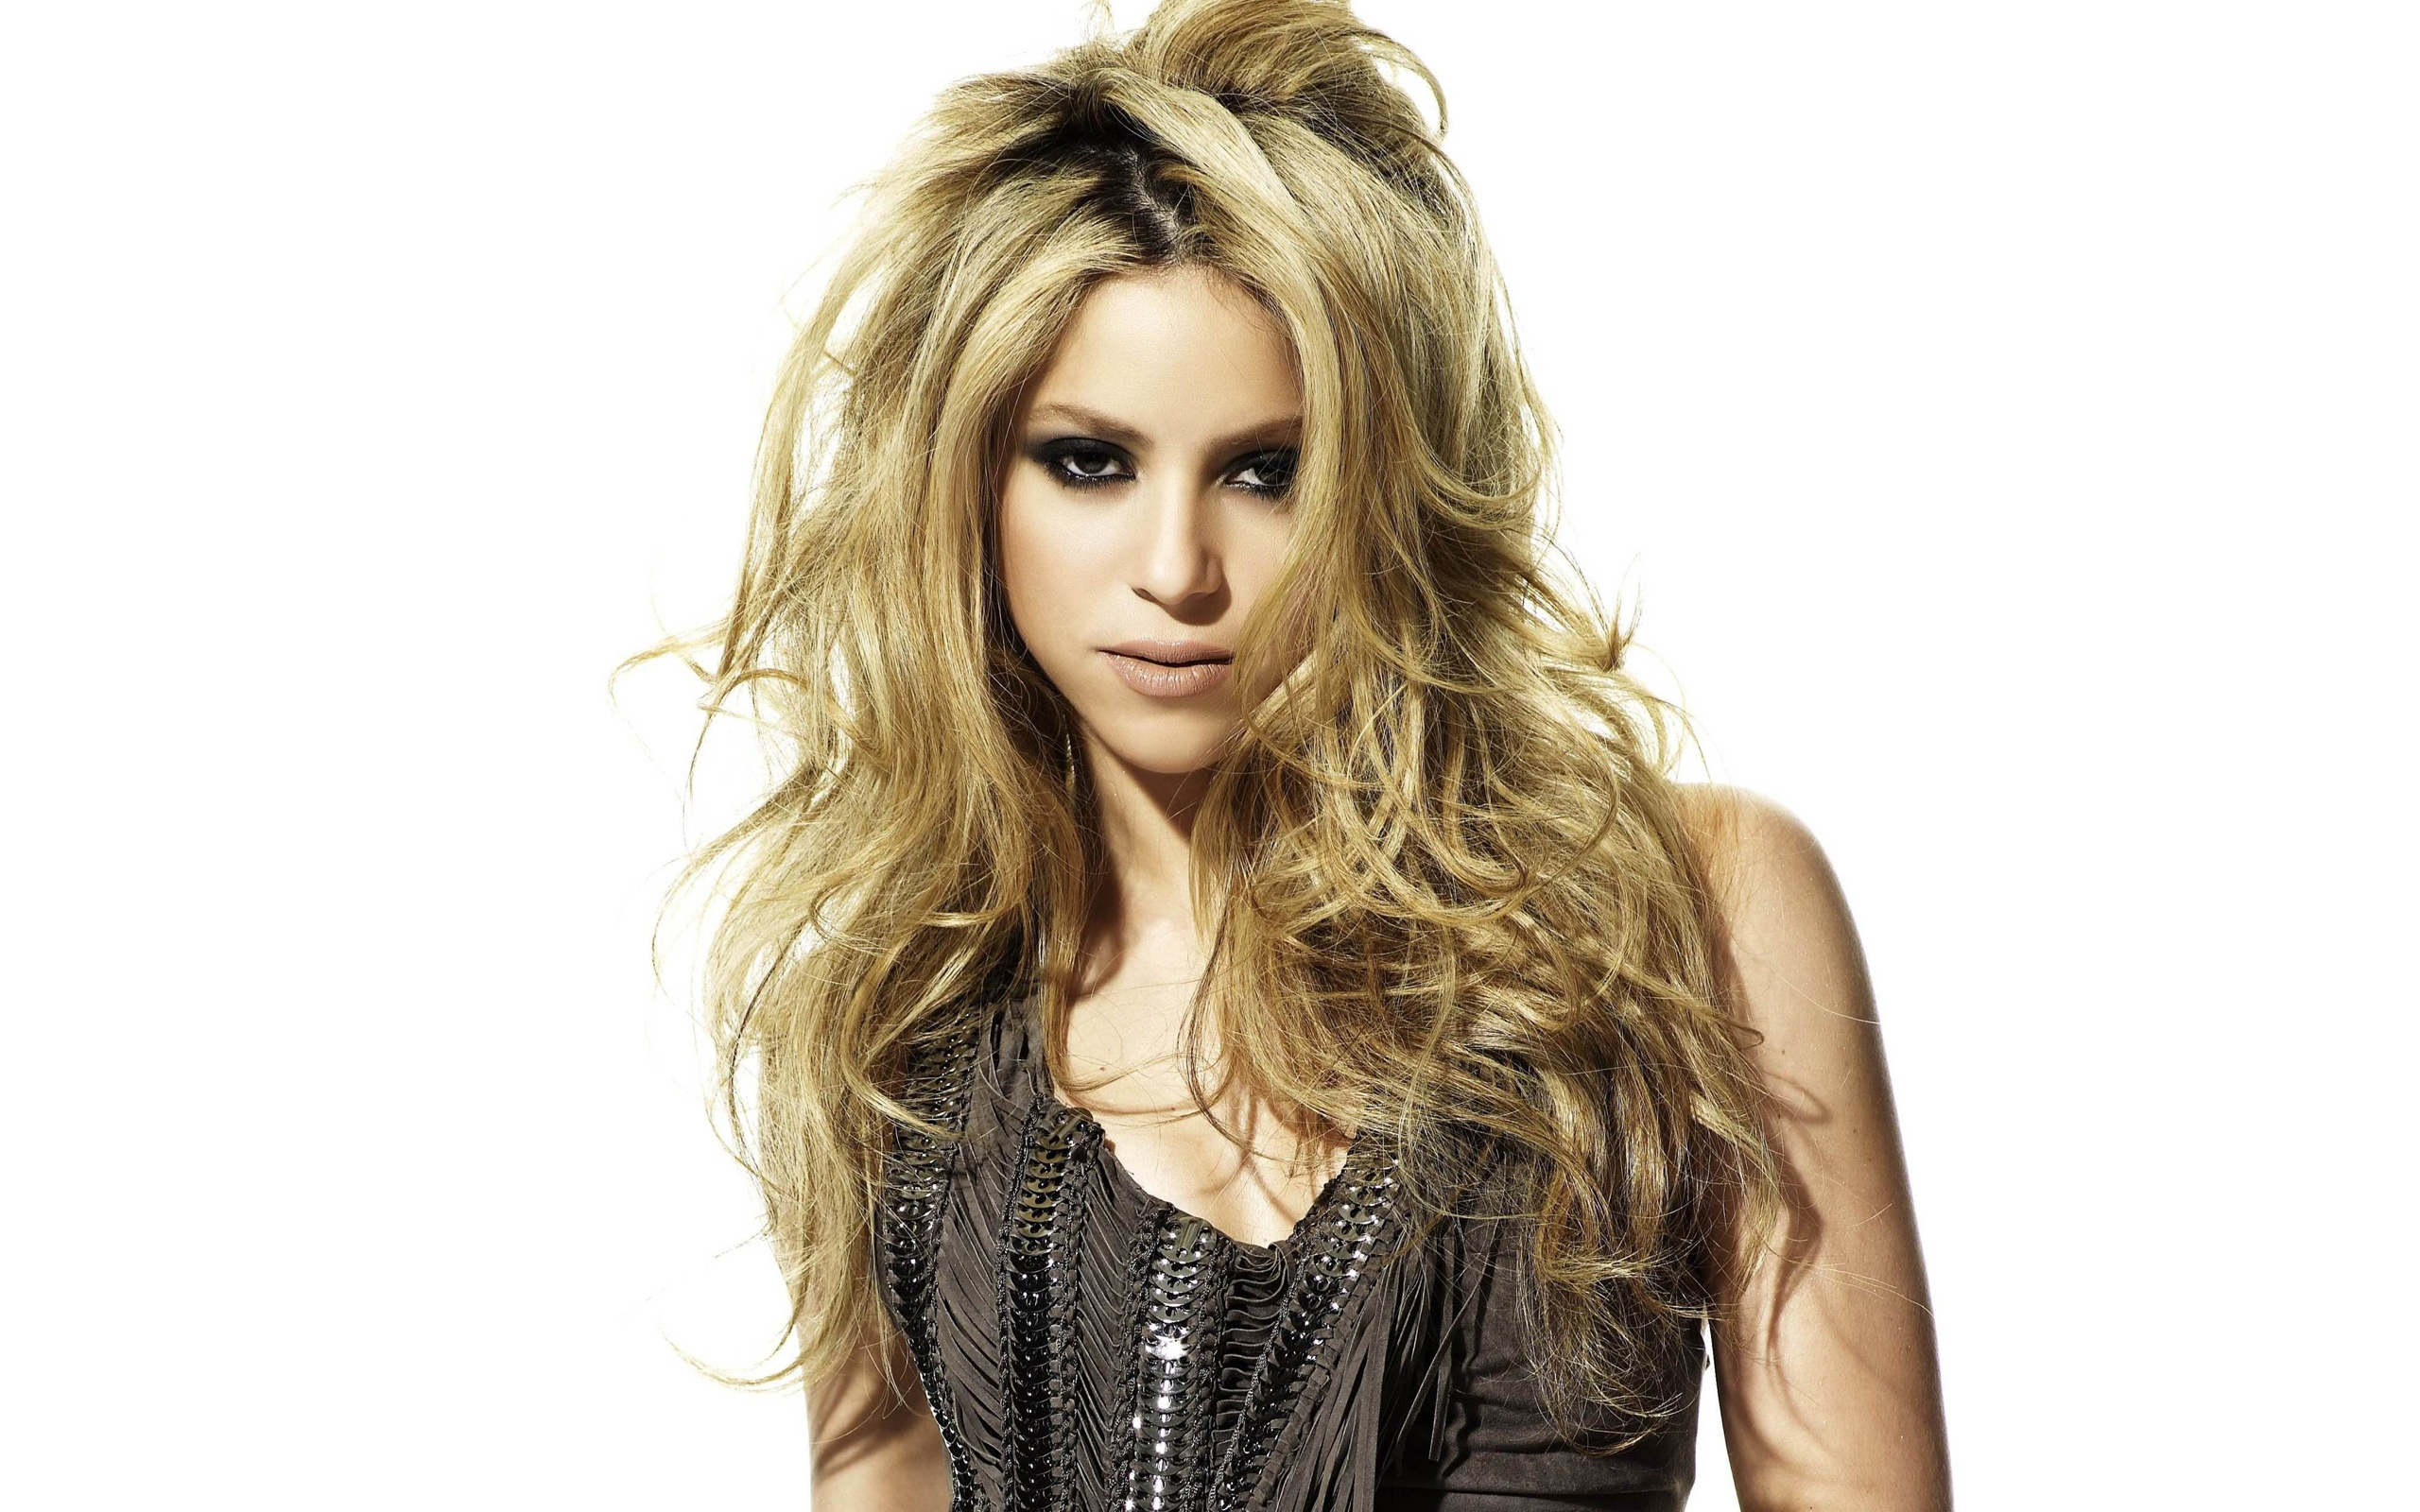 Wallpaper Shakira 03 2560x1600 Hd Picture Image